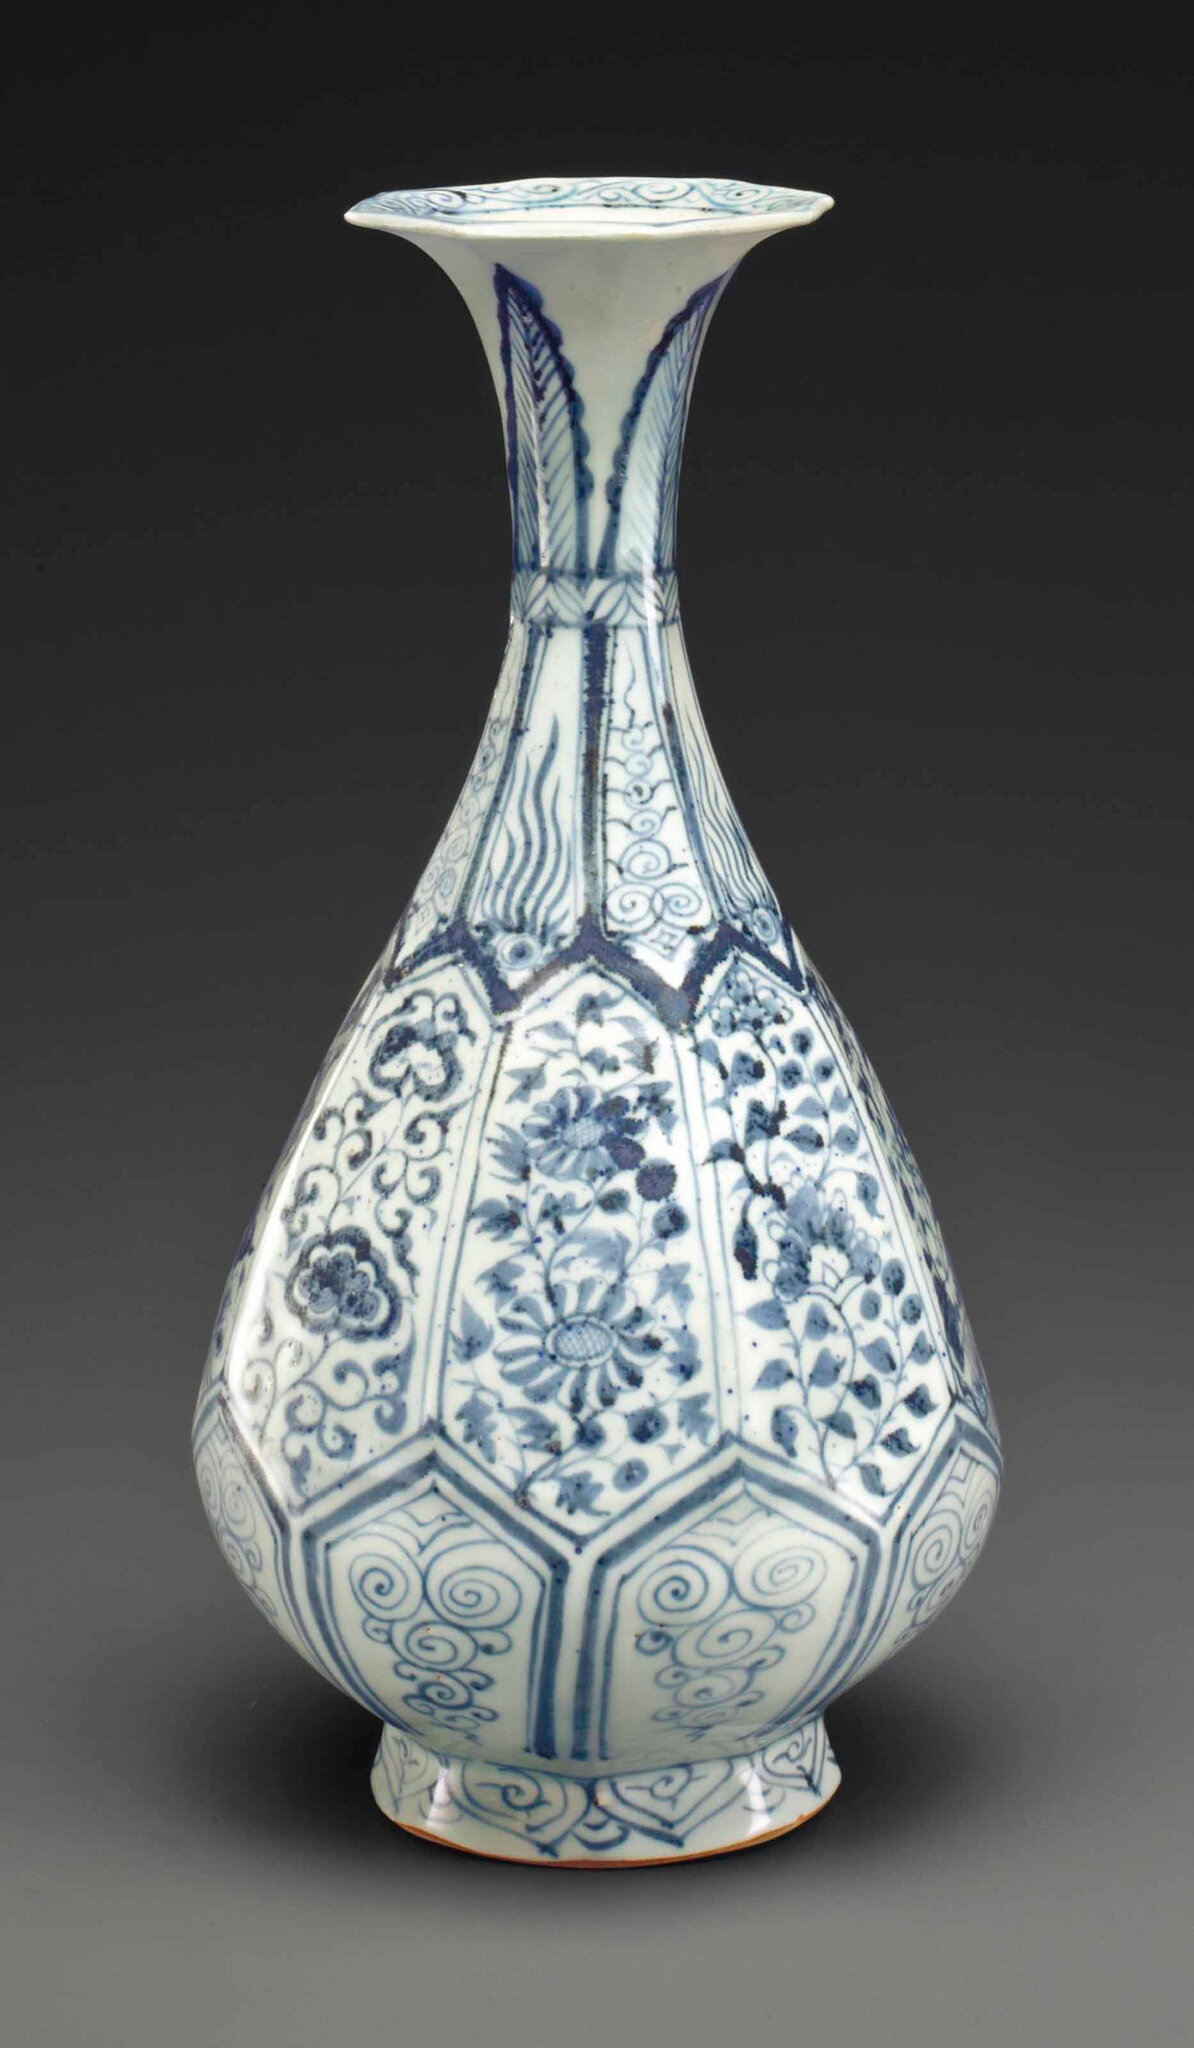 very rare blue and white faceted bottle vase, yuhuchunping, Yuan dynasty (1279-1368)